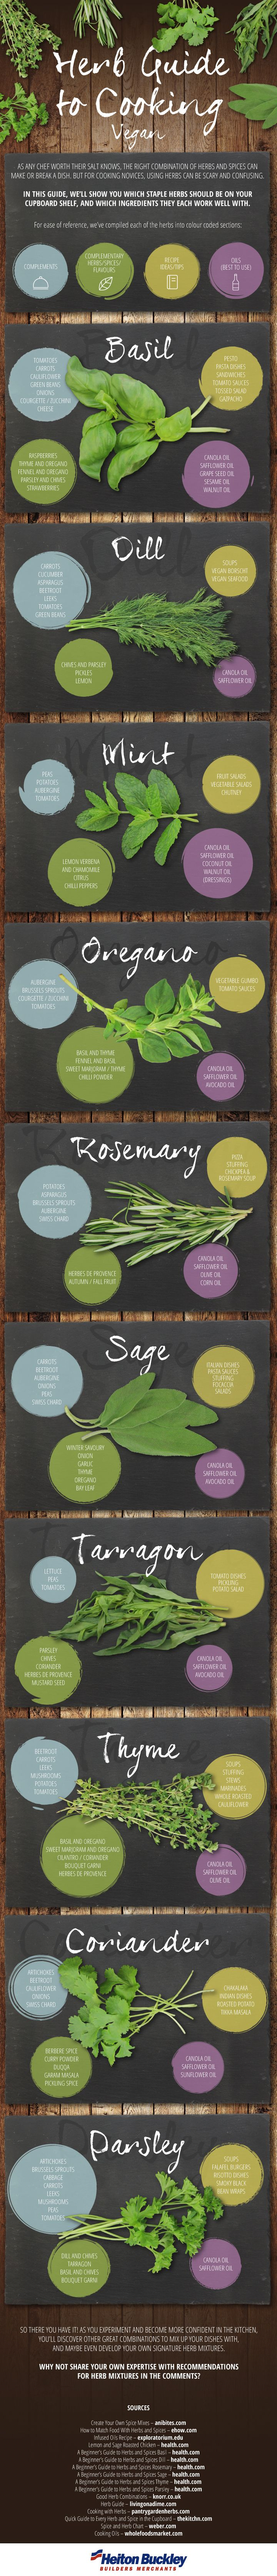 Food infographic - A Herb Guide to Cooking for Vegans